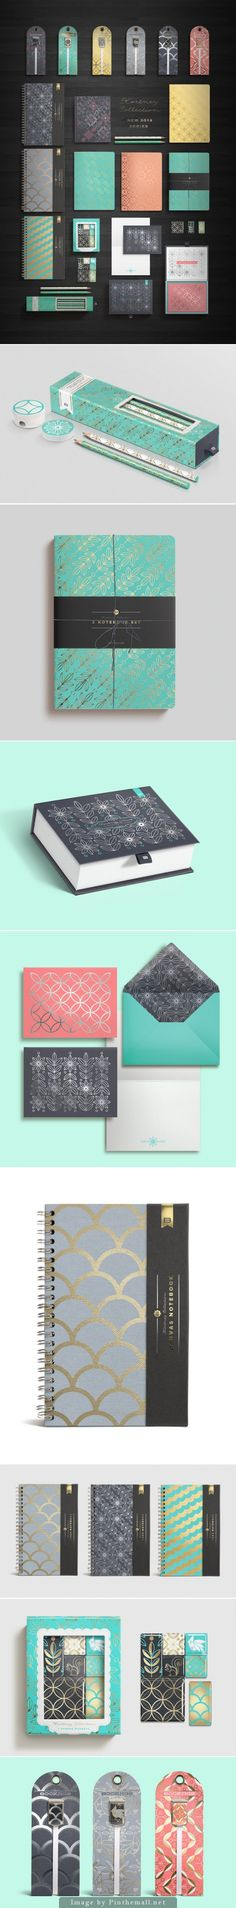 Kortney Collection Packaging. I love all of these products and the designs they have. They're all so soft, elegant and simple patterns yet each pattern would be able to mix and match with each other and still look good. For example, a notebook with a certain pattern would look good with a pencil of a different pattern. They all have their own unique style yet work well with all of the products as a whole.